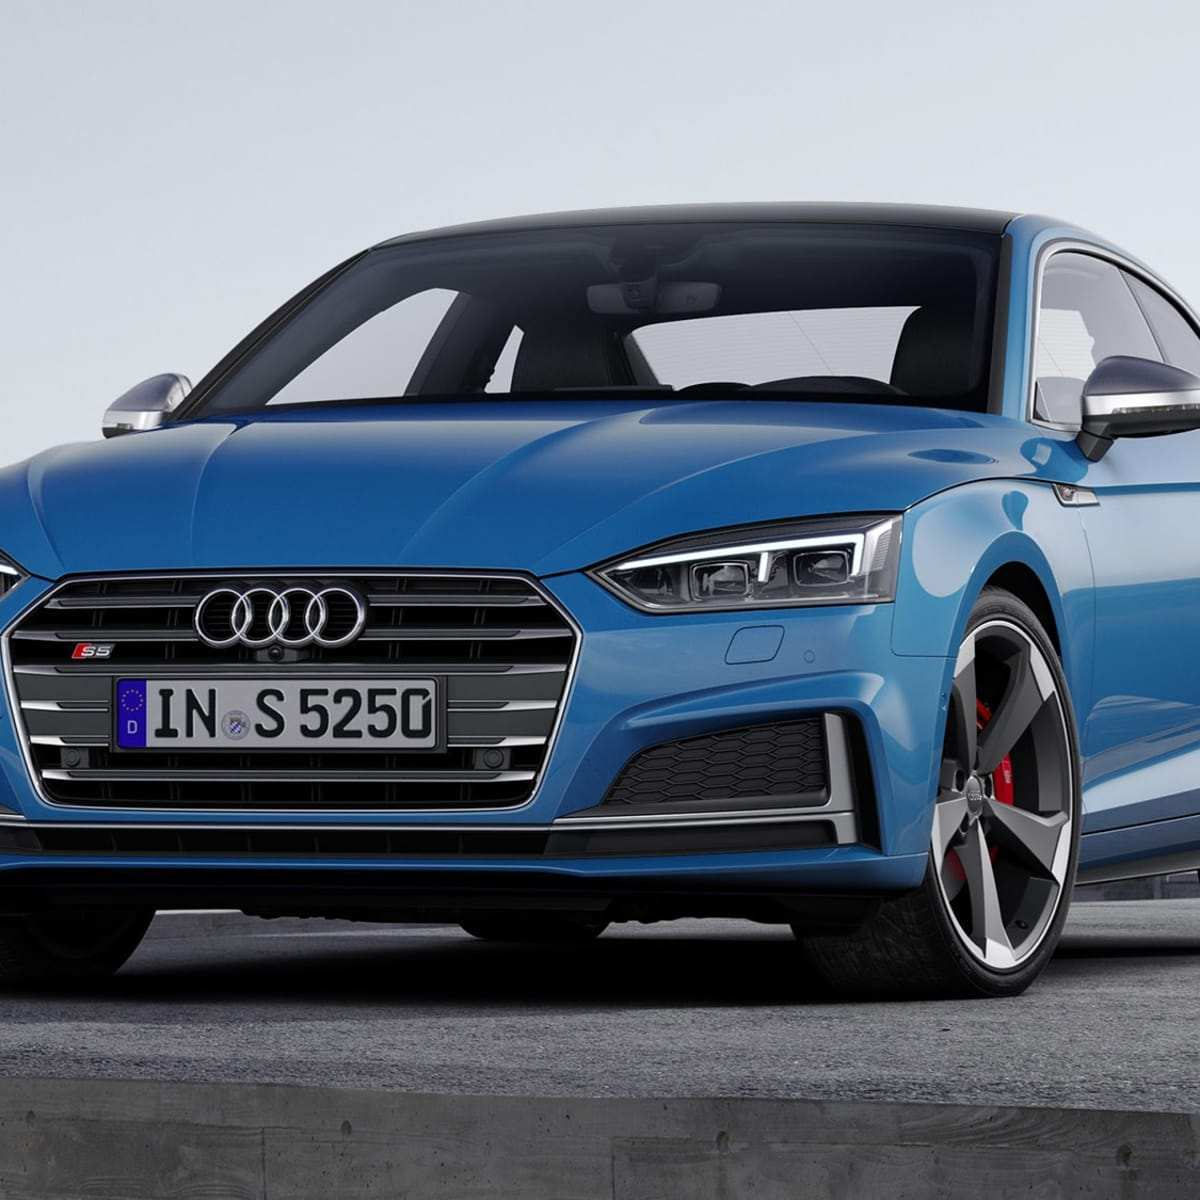 82 All New 2020 Audi Rs5 Tdi Photos